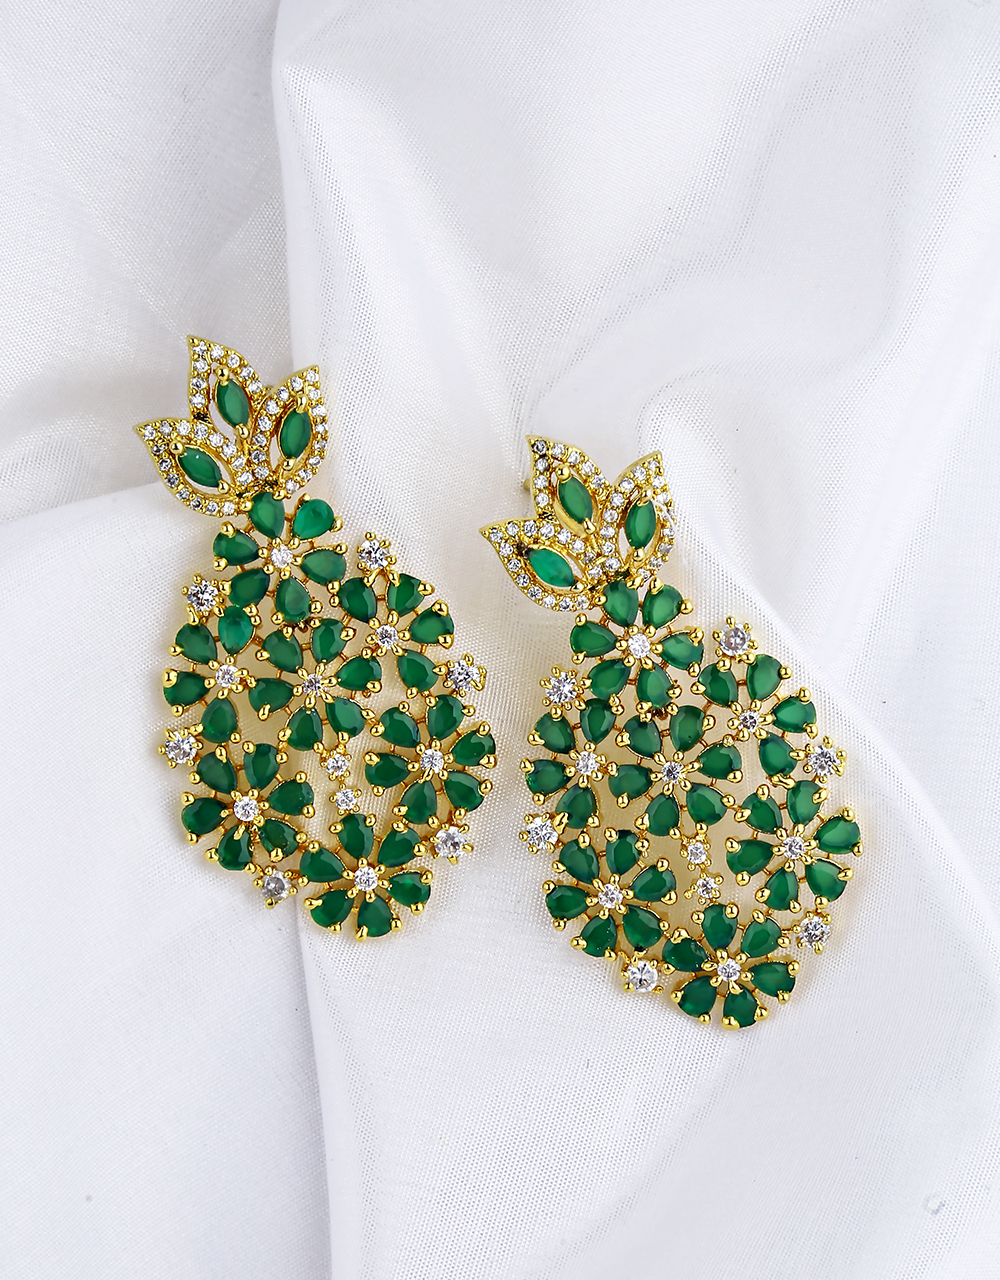 Green Colour Appealing Diamond Studded Floral Earrings for Women